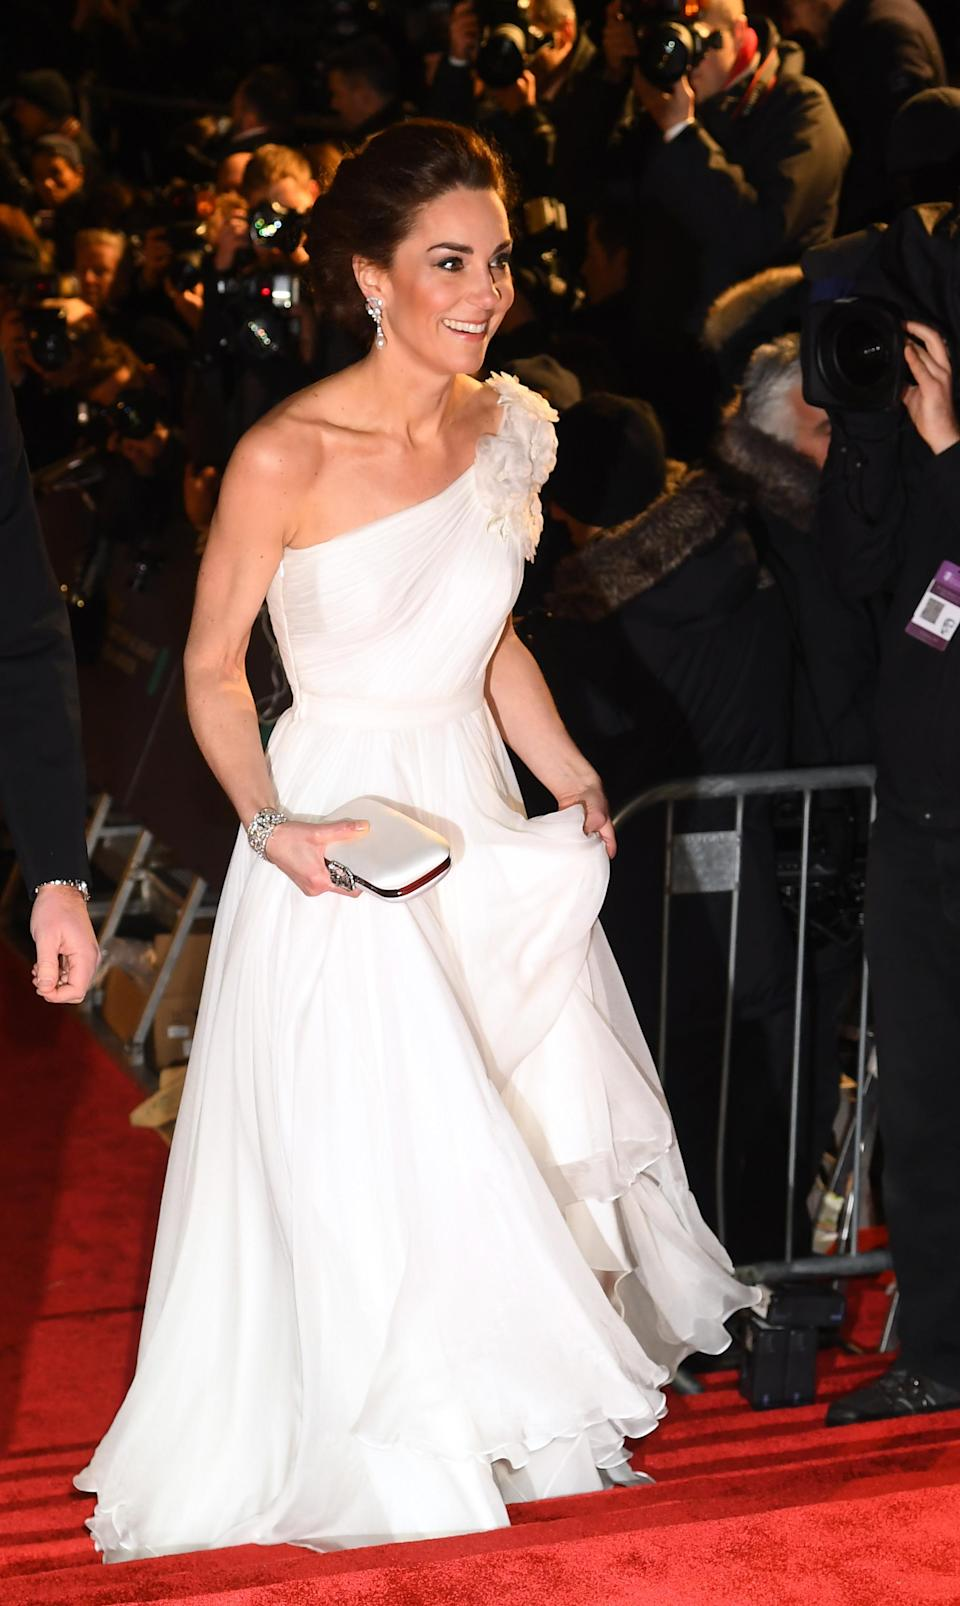 Kate channelled Hollywood glamour in a one-shoulder Alexander McQueen gown with floral on one side, to accompany William to the BAFTAs at The Royal Albert Hall. The Duchess teamed it with a new pair of Jimmy Choo's glittery Romy pumps and an Alexander McQueen satin clutch bag. She debuted Princess Diana's diamond and south sea pearl dangle earrings and borrowed the diamond quatrefoil bracelet, which once belonged to the Queen Mother. [Photo: Getty]